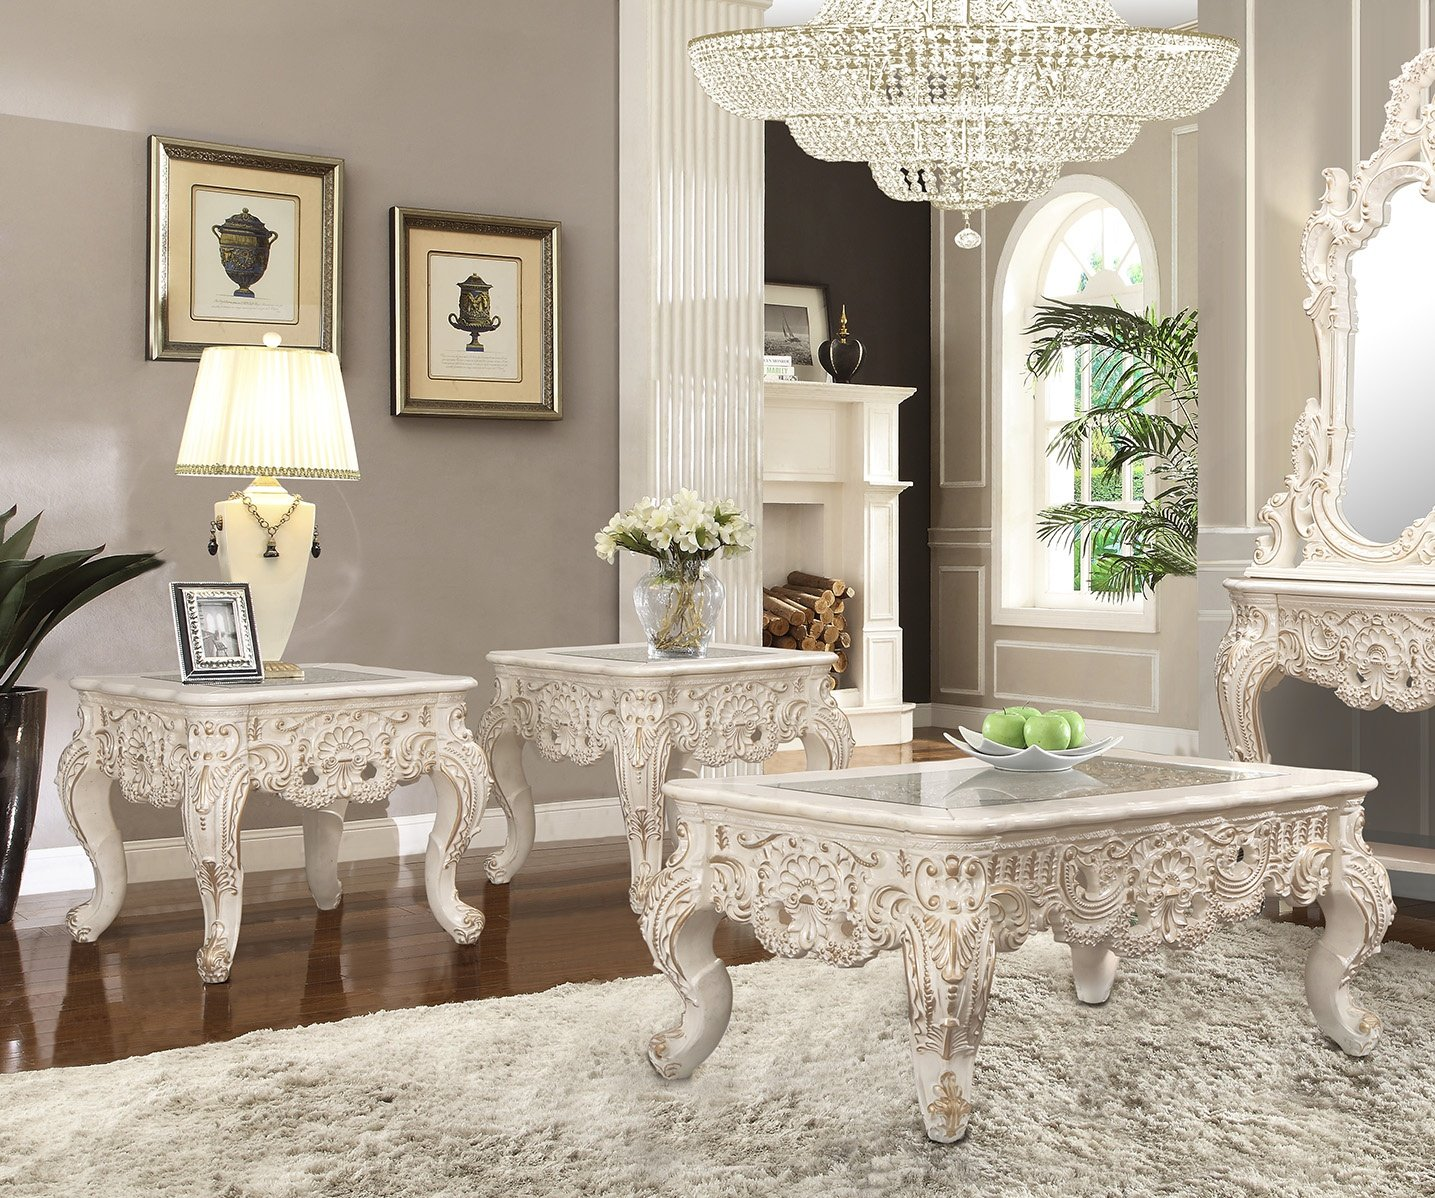 Traditional Coffee Table Set 3 PCS in Beige Wood,Glass Traditional Style Homey Design HD-998I